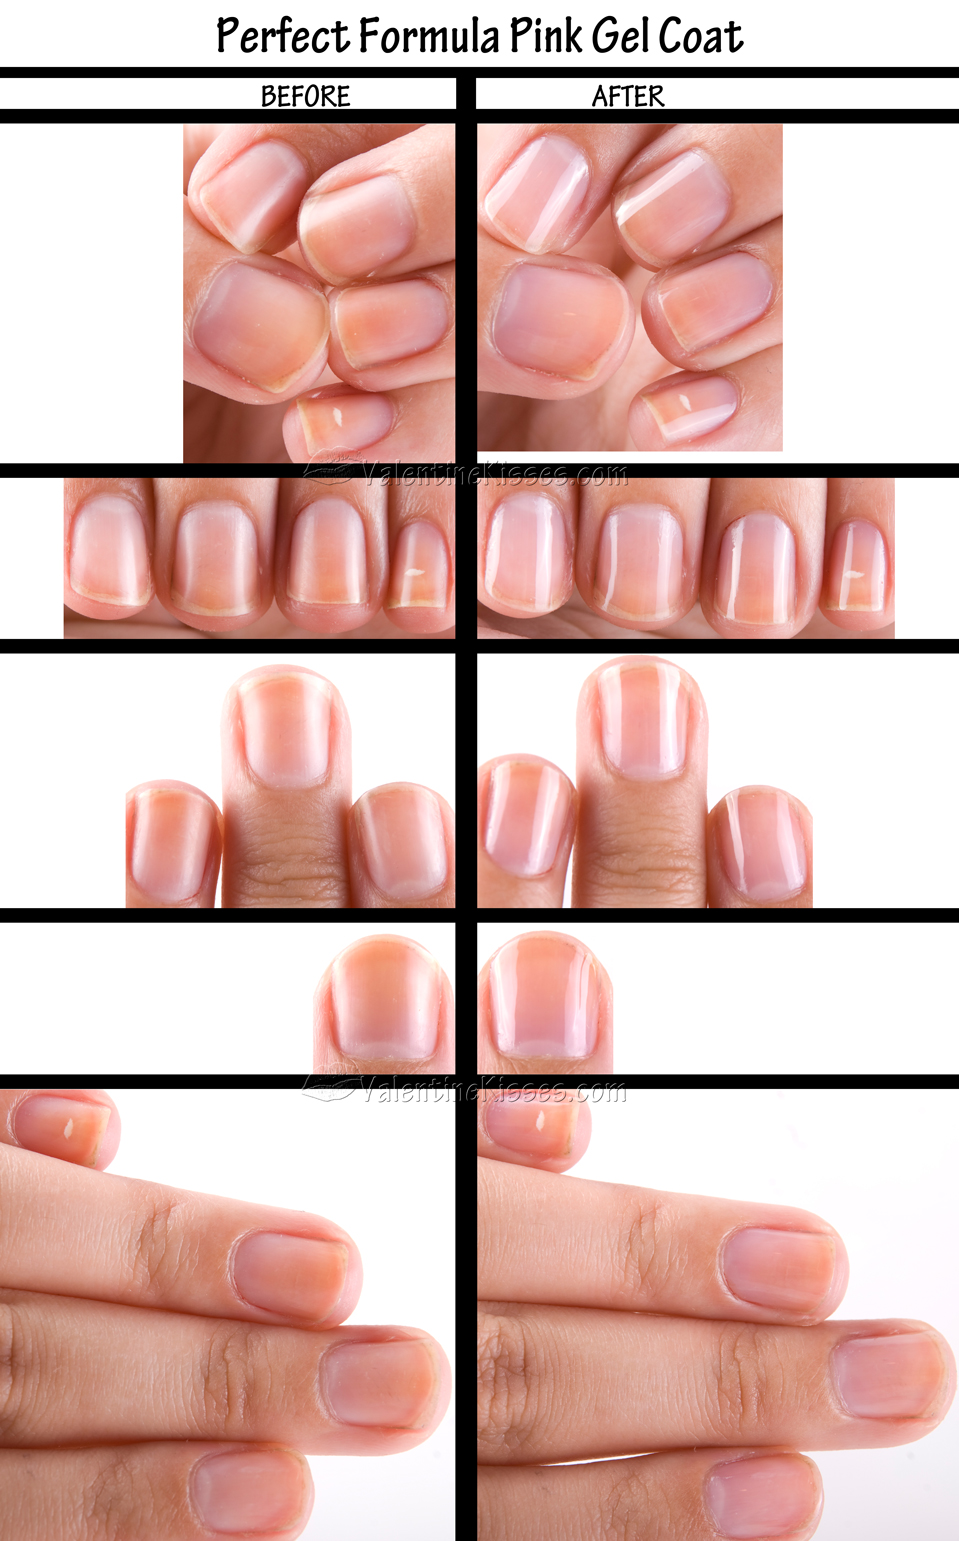 Fine Transparent Nail Polish Colors Tiny Nail Art Designs In Red Round Black Nail Polish Meaning Nail Arts Latest Old Nails Are Yellow From Nail Polish GreenNail Art Tree Valentine Kisses: Perfect Formula Pink Gel Coat: Pics, Before ..